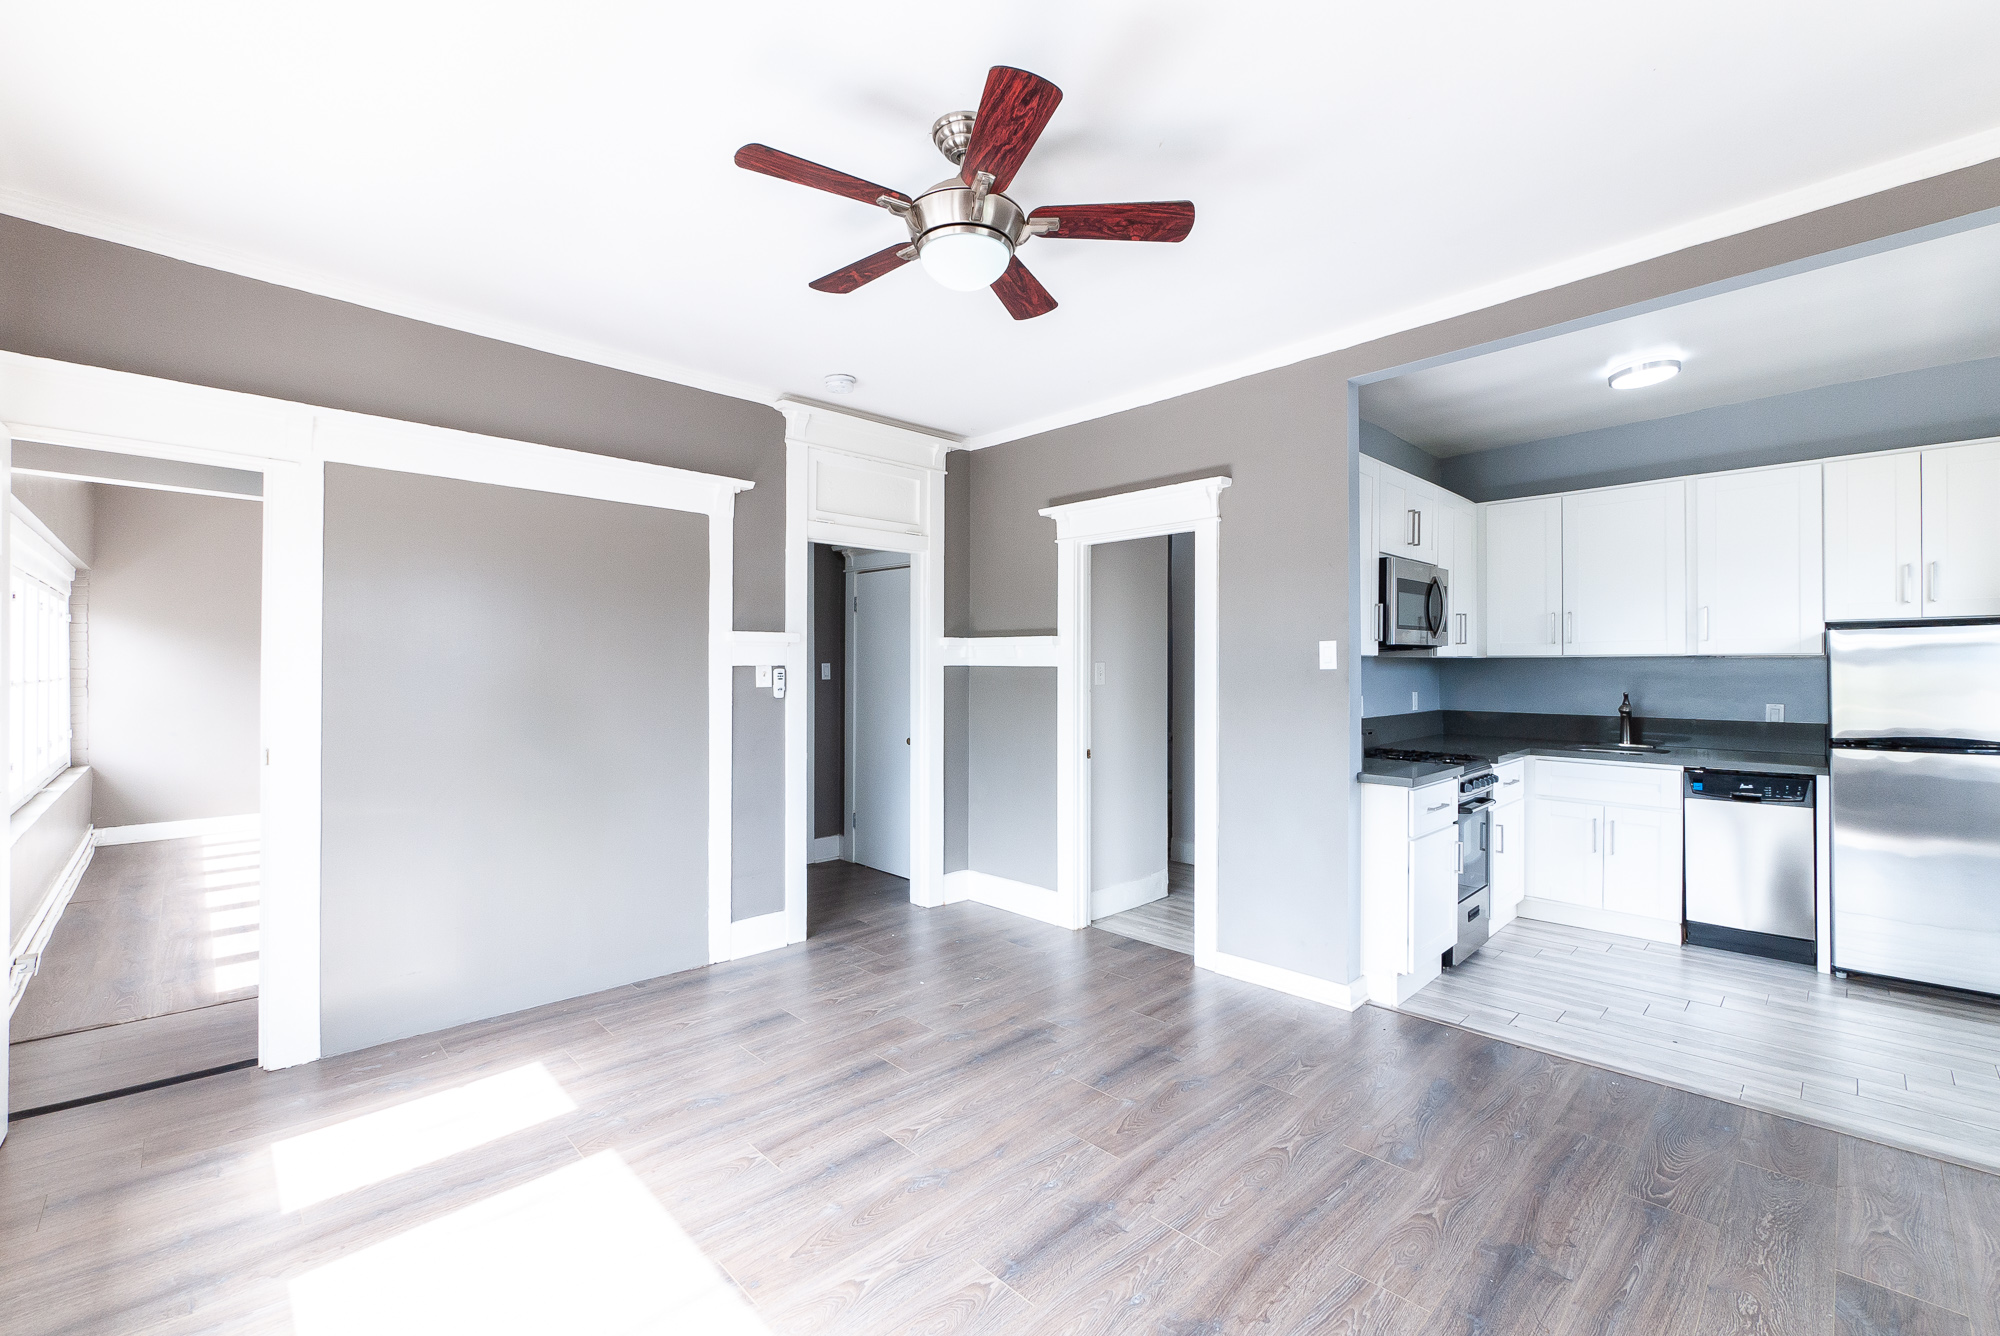 Lincoln Heights   Front Unit   Flooded in Natural Light with Wall of Windows   Views of DTLA Skyline